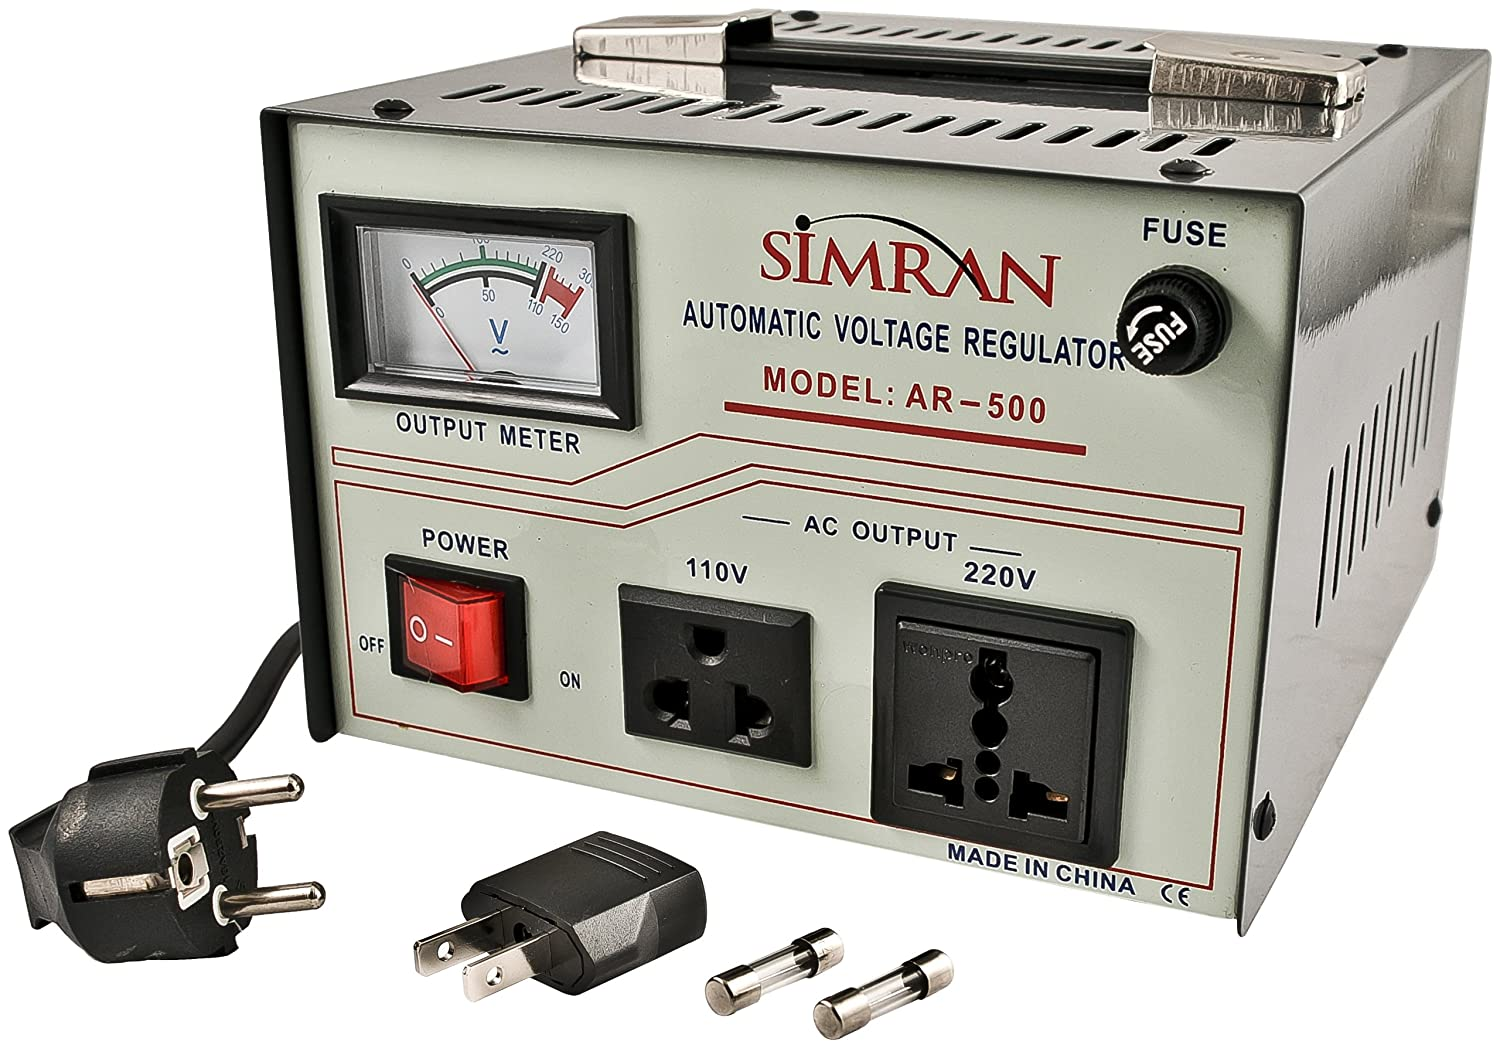 Simran Ar 3000 Power Converter Regulator Stabilizer Basic Of Automatic Voltage Electrical Engineering Centre Transformer Watt Grey Home Improvement